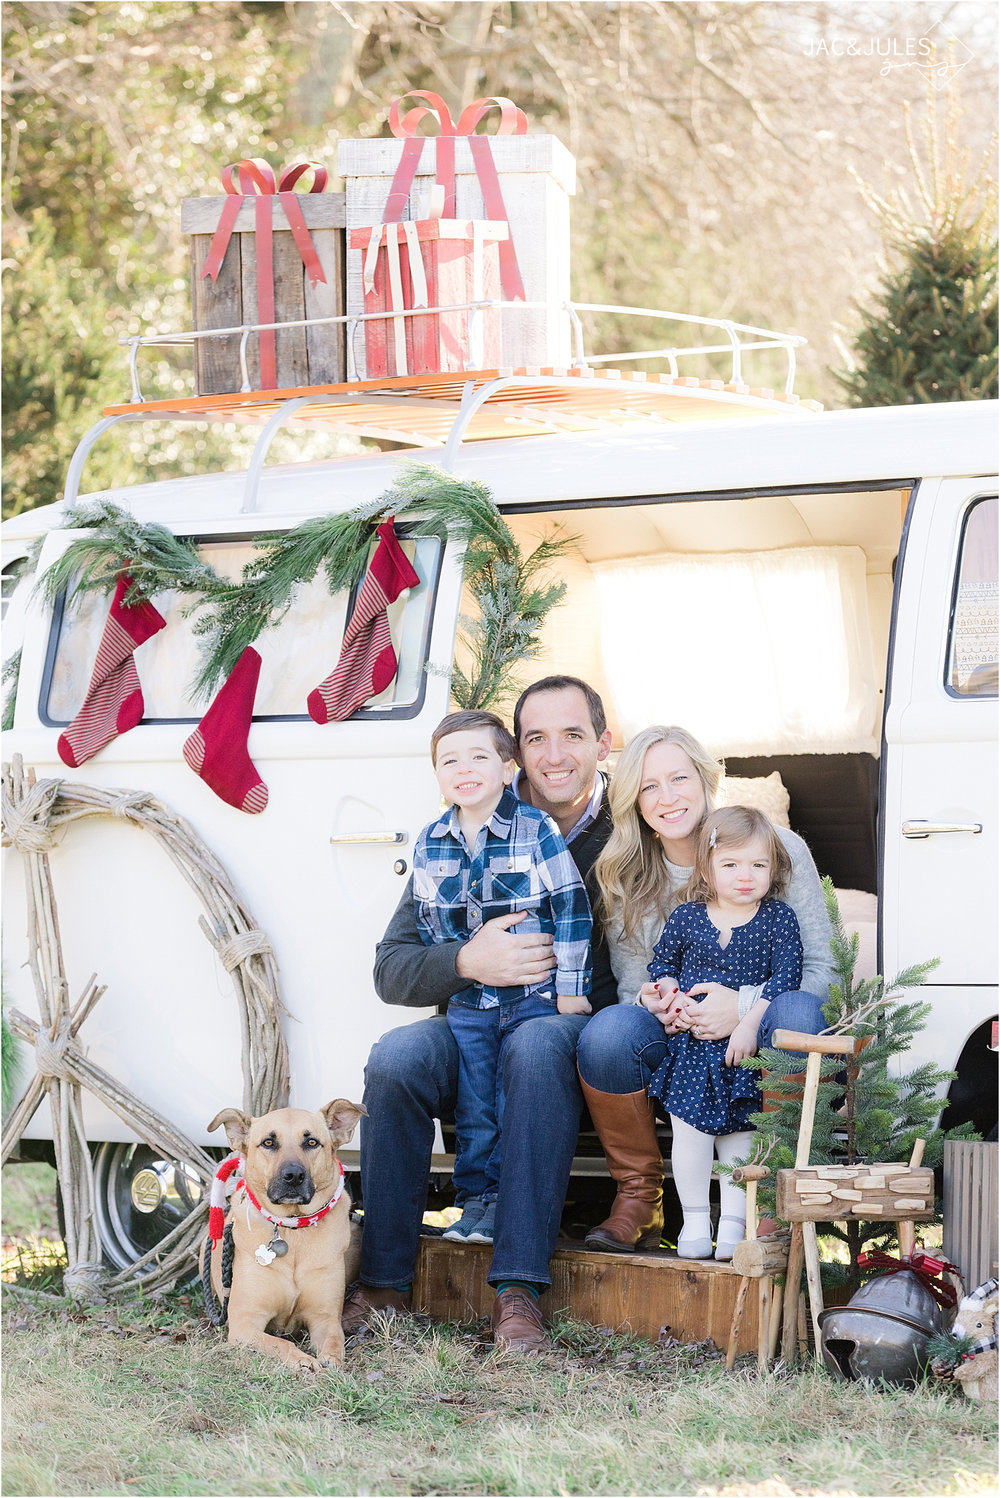 family christmas photo with dog at a tree farm in NJ using vw bus